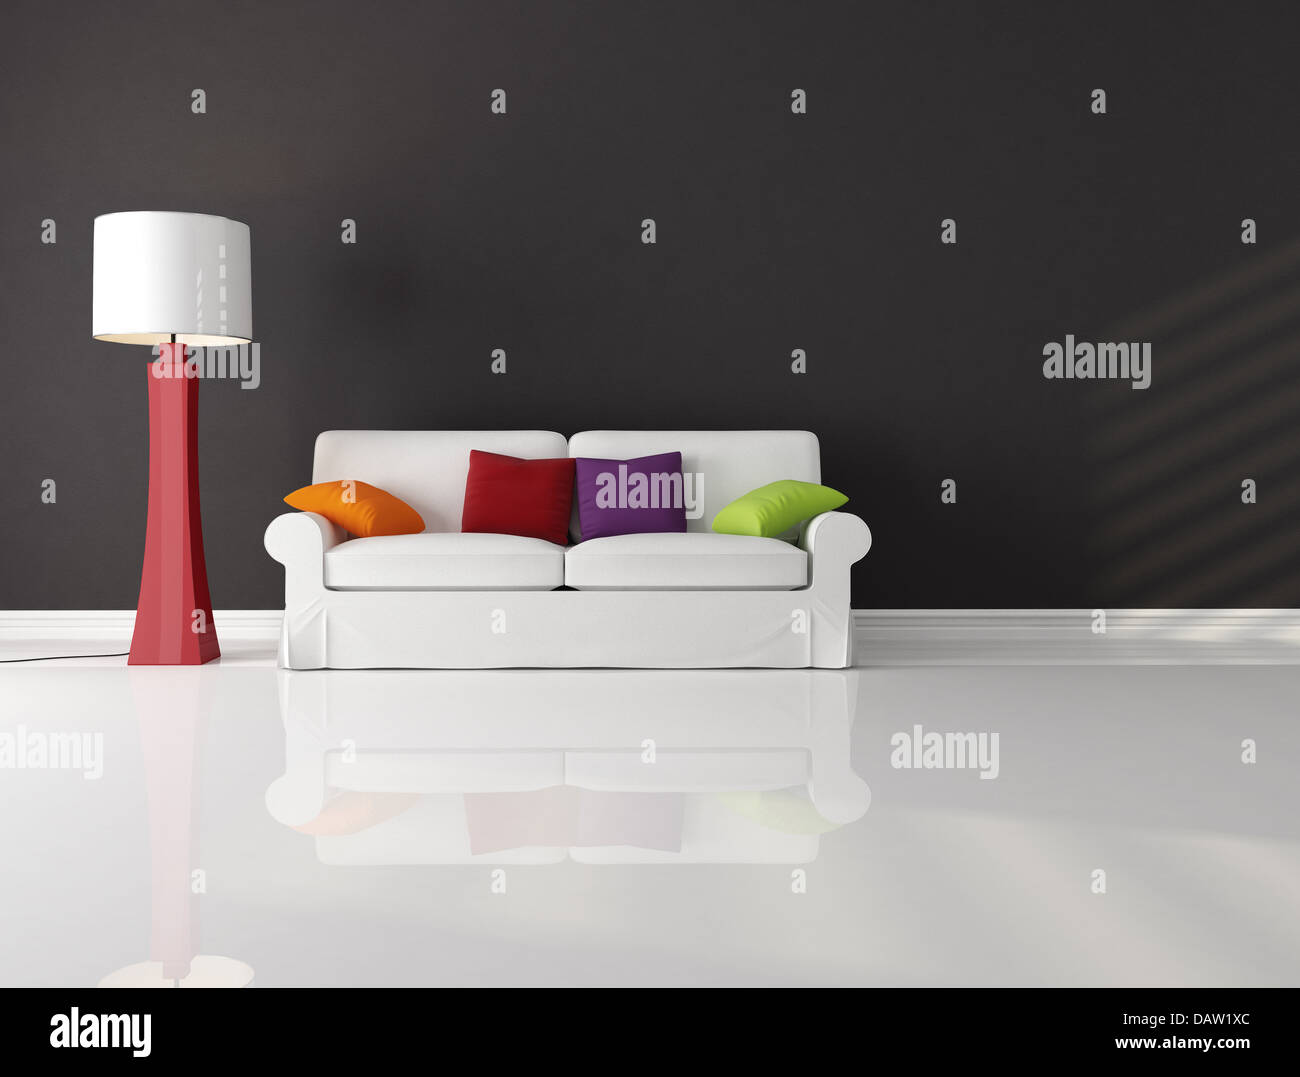 Stock Photo - White Couch With Cushion In A Black And White Living  Room-rendering